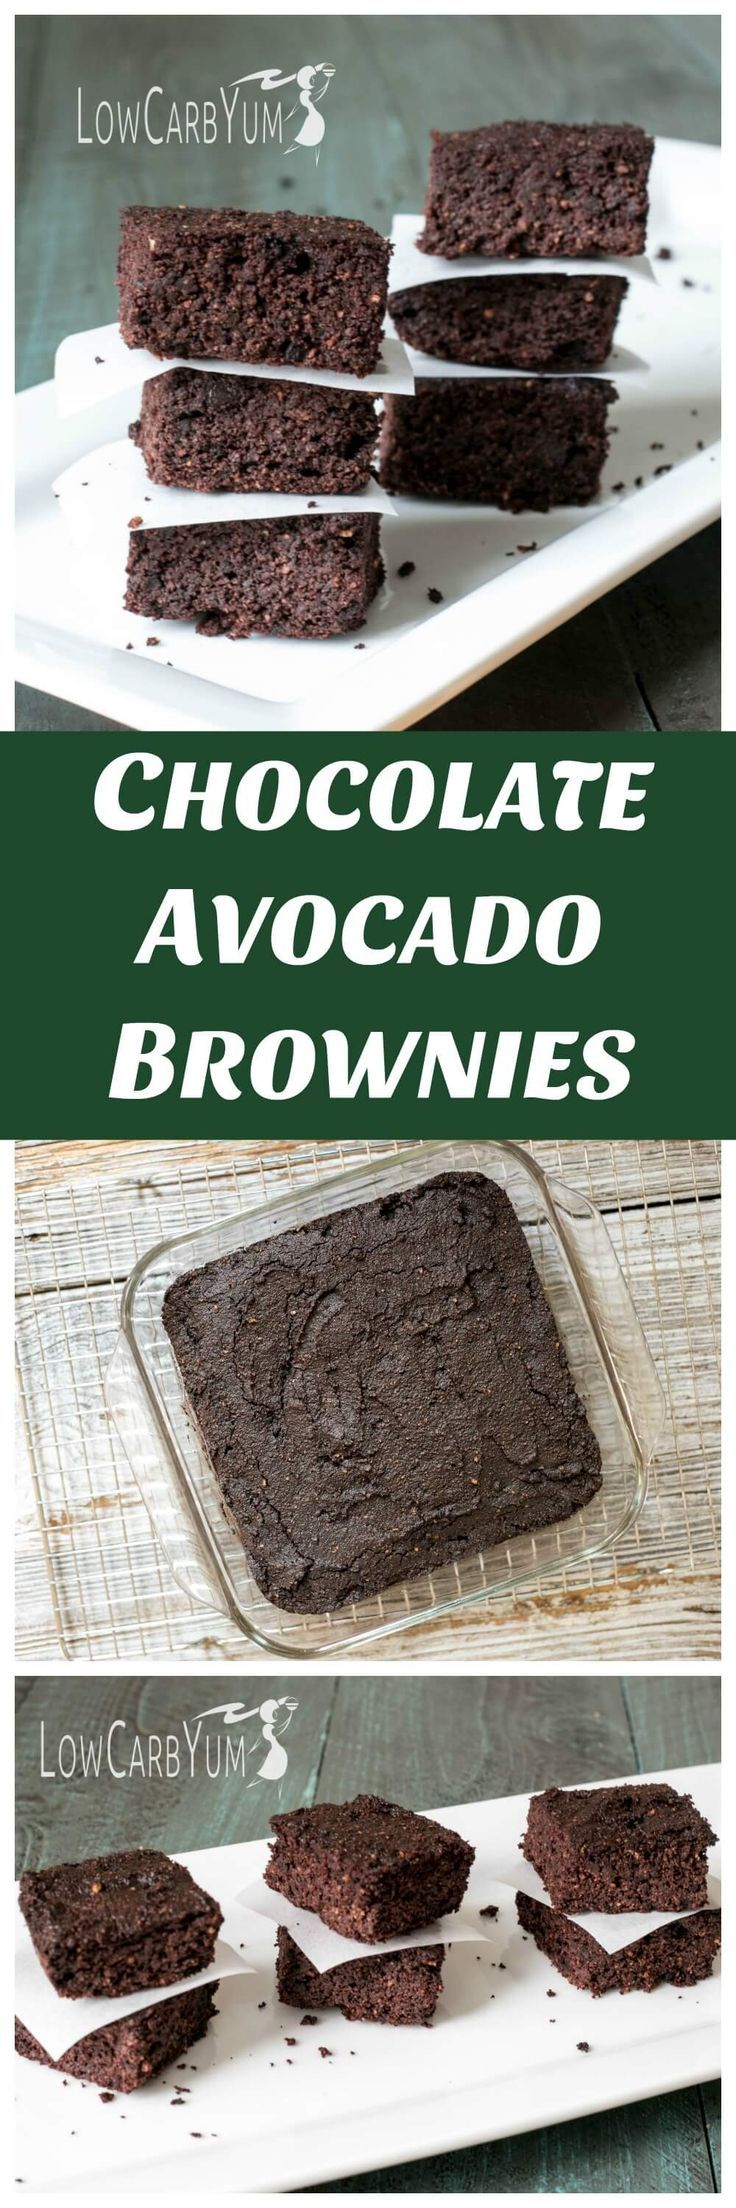 Not a fan of avocados? You'd never know they were in these low carb gluten free chocolate avocado brownies! Why not give them a try and see. | http://LowCarbYum.com